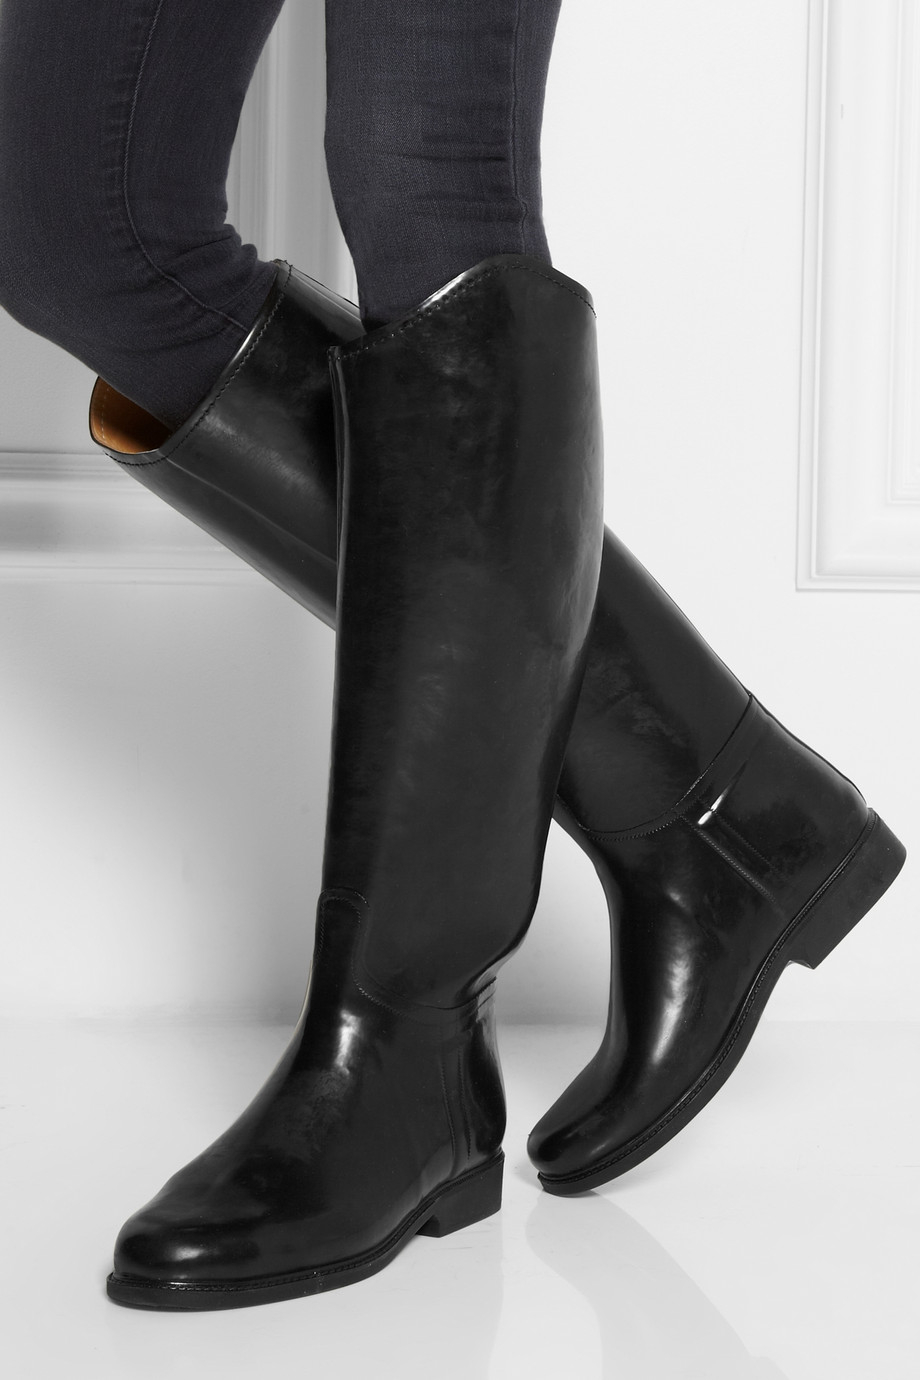 Le chameau Alezan Leather-Lined Rubber Riding Boots in Black | Lyst